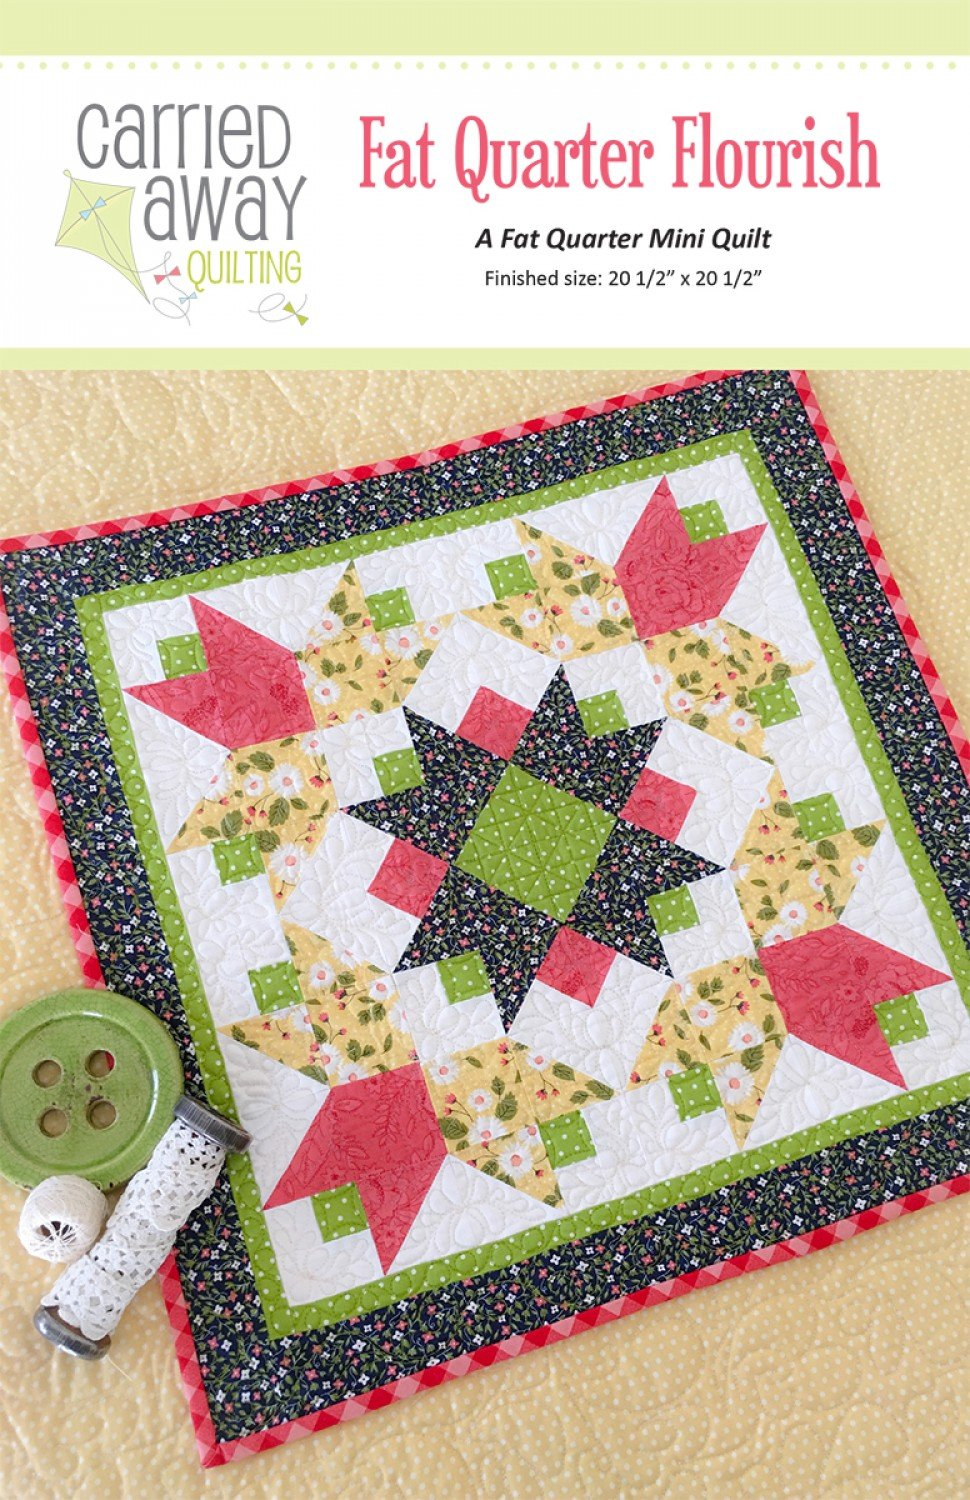 Fat Quarter Flourish By Taunja Kelvington From Carried Away Quilting